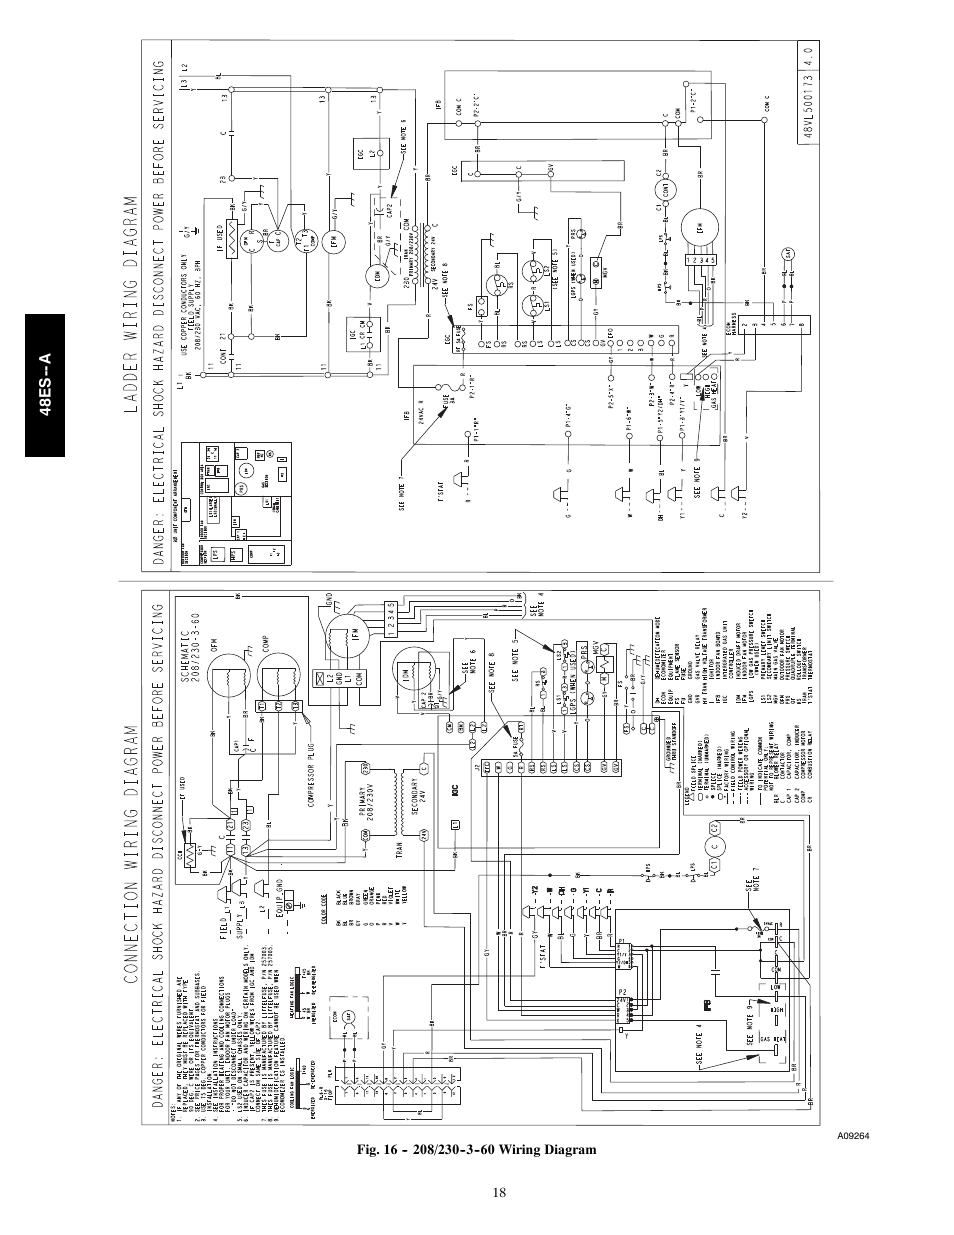 Carrier 48es Wiring Diagram Free Download Old Diagrams A User Manual Page 18 38 Heat Pump Contactor At